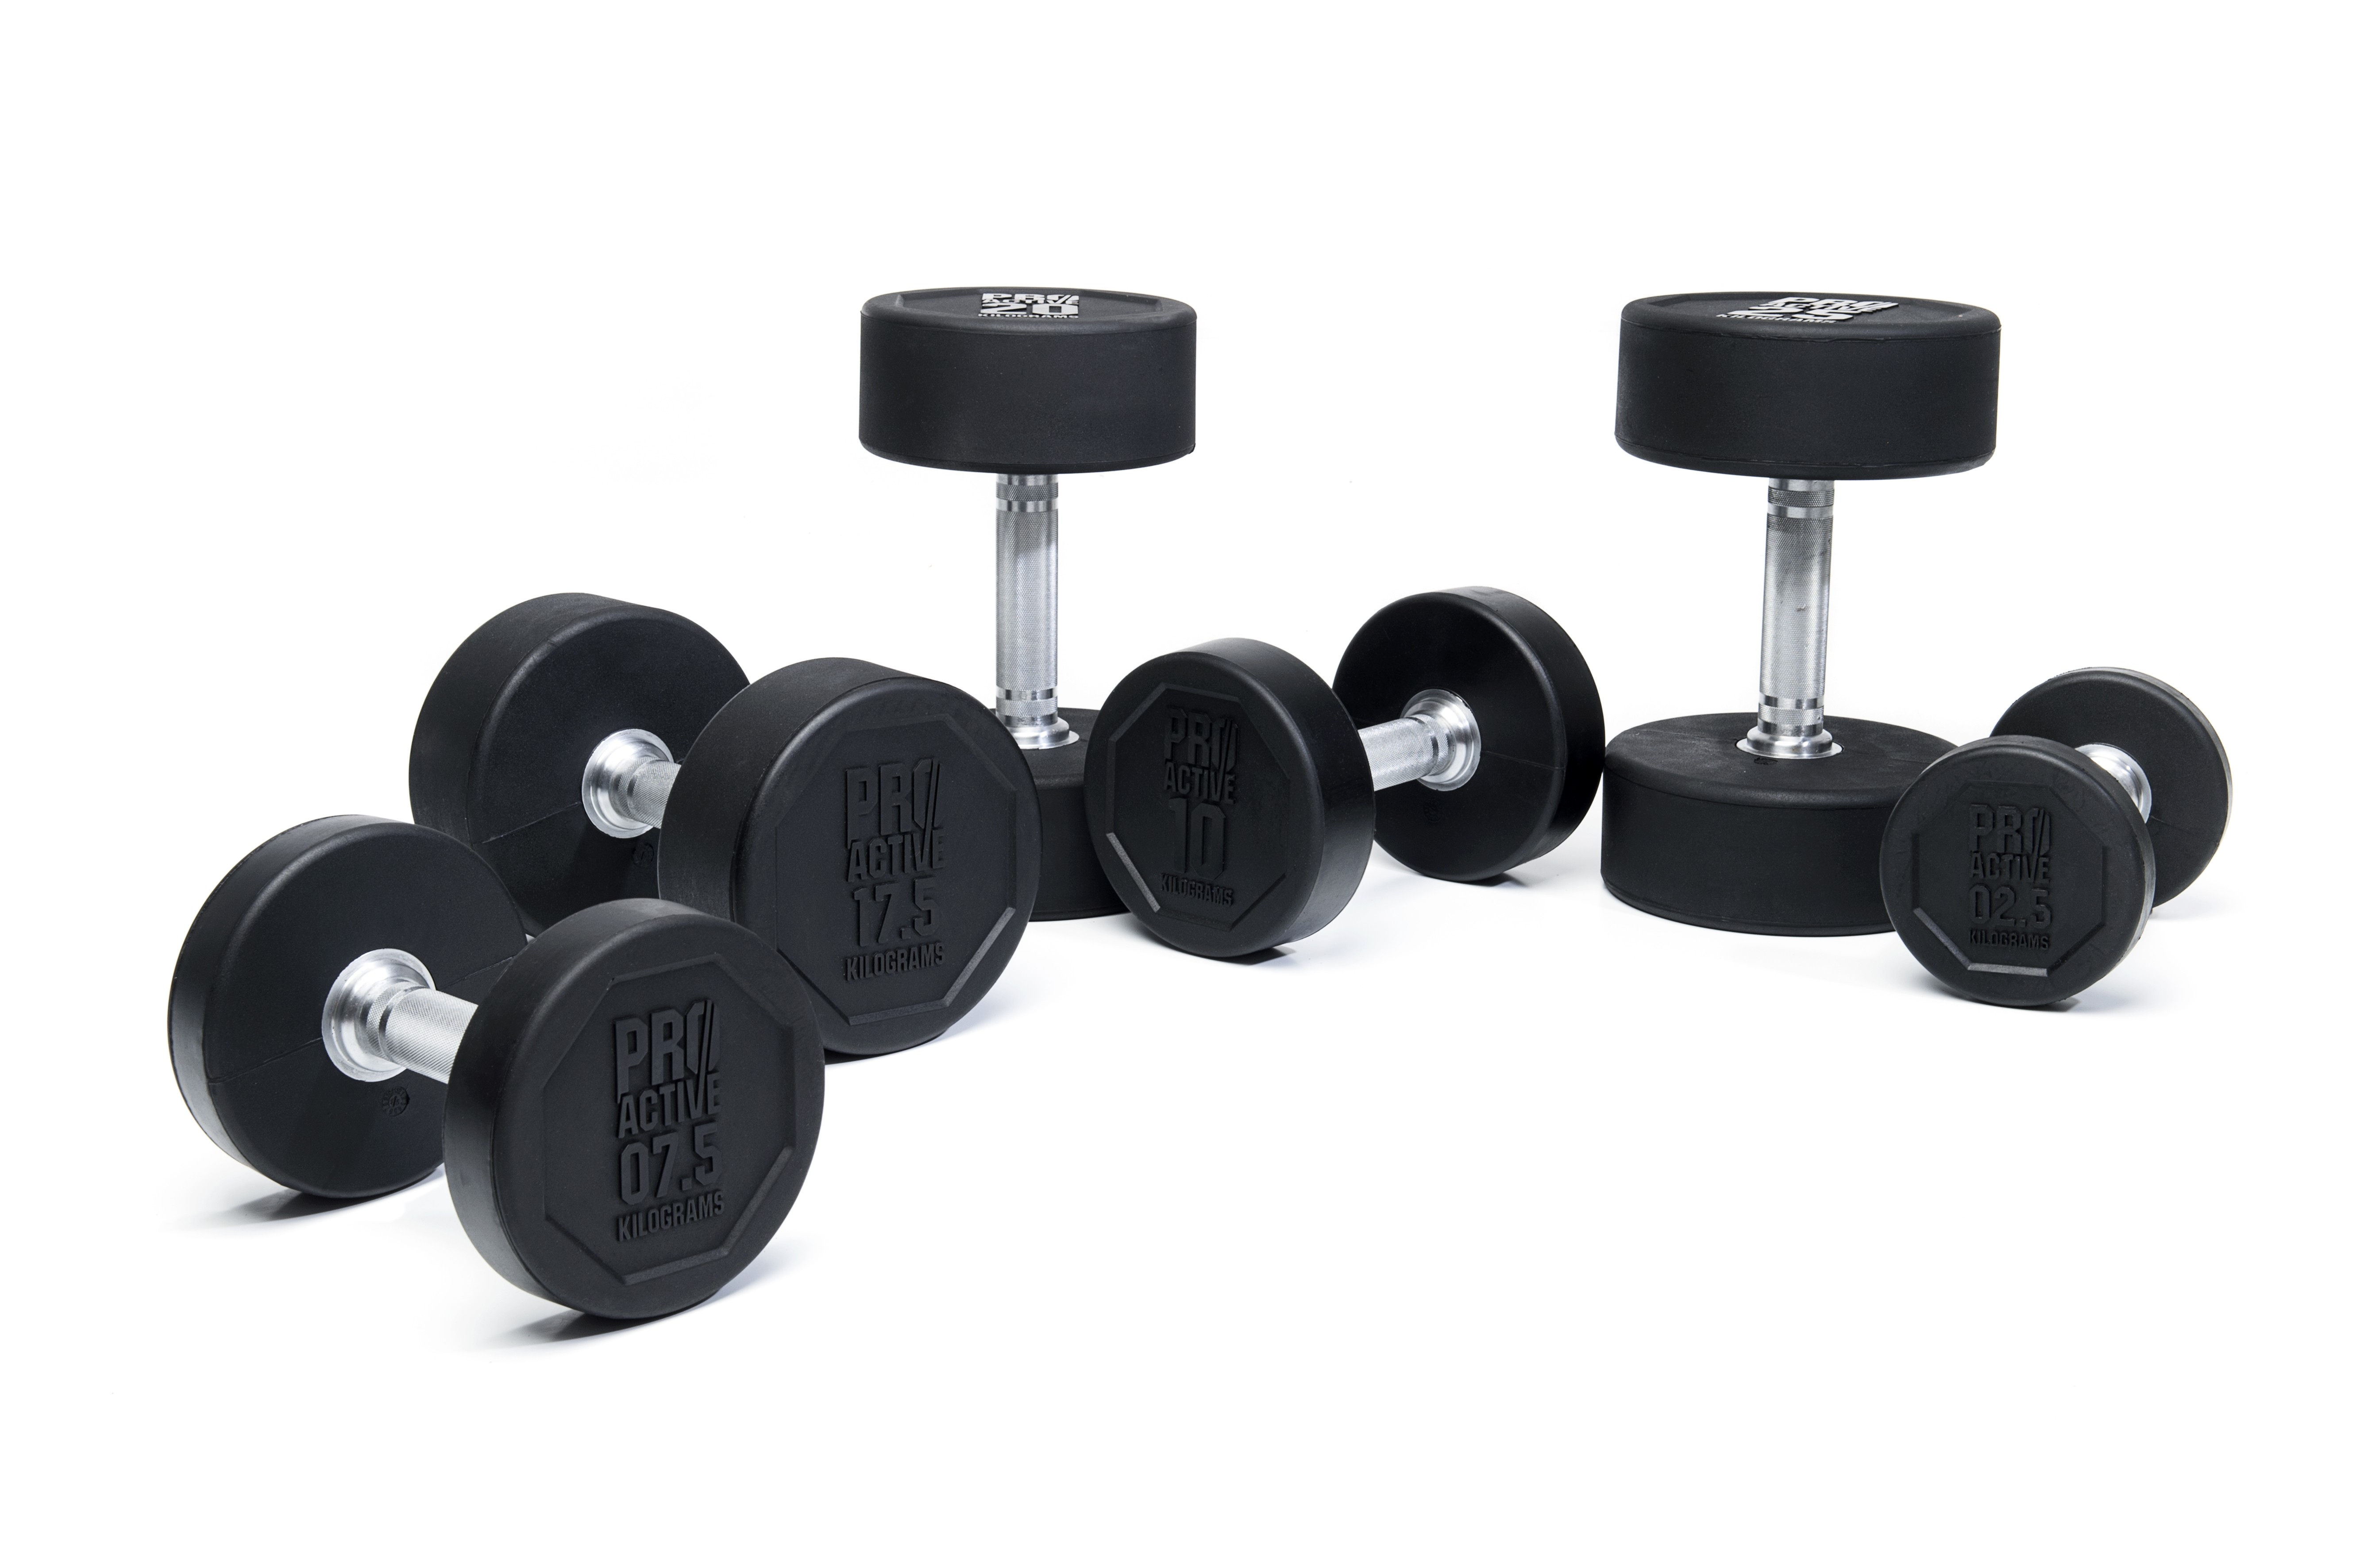 PROACTIVE Rubber Dumbbells (Available in 2.5kg - 50kg weights)